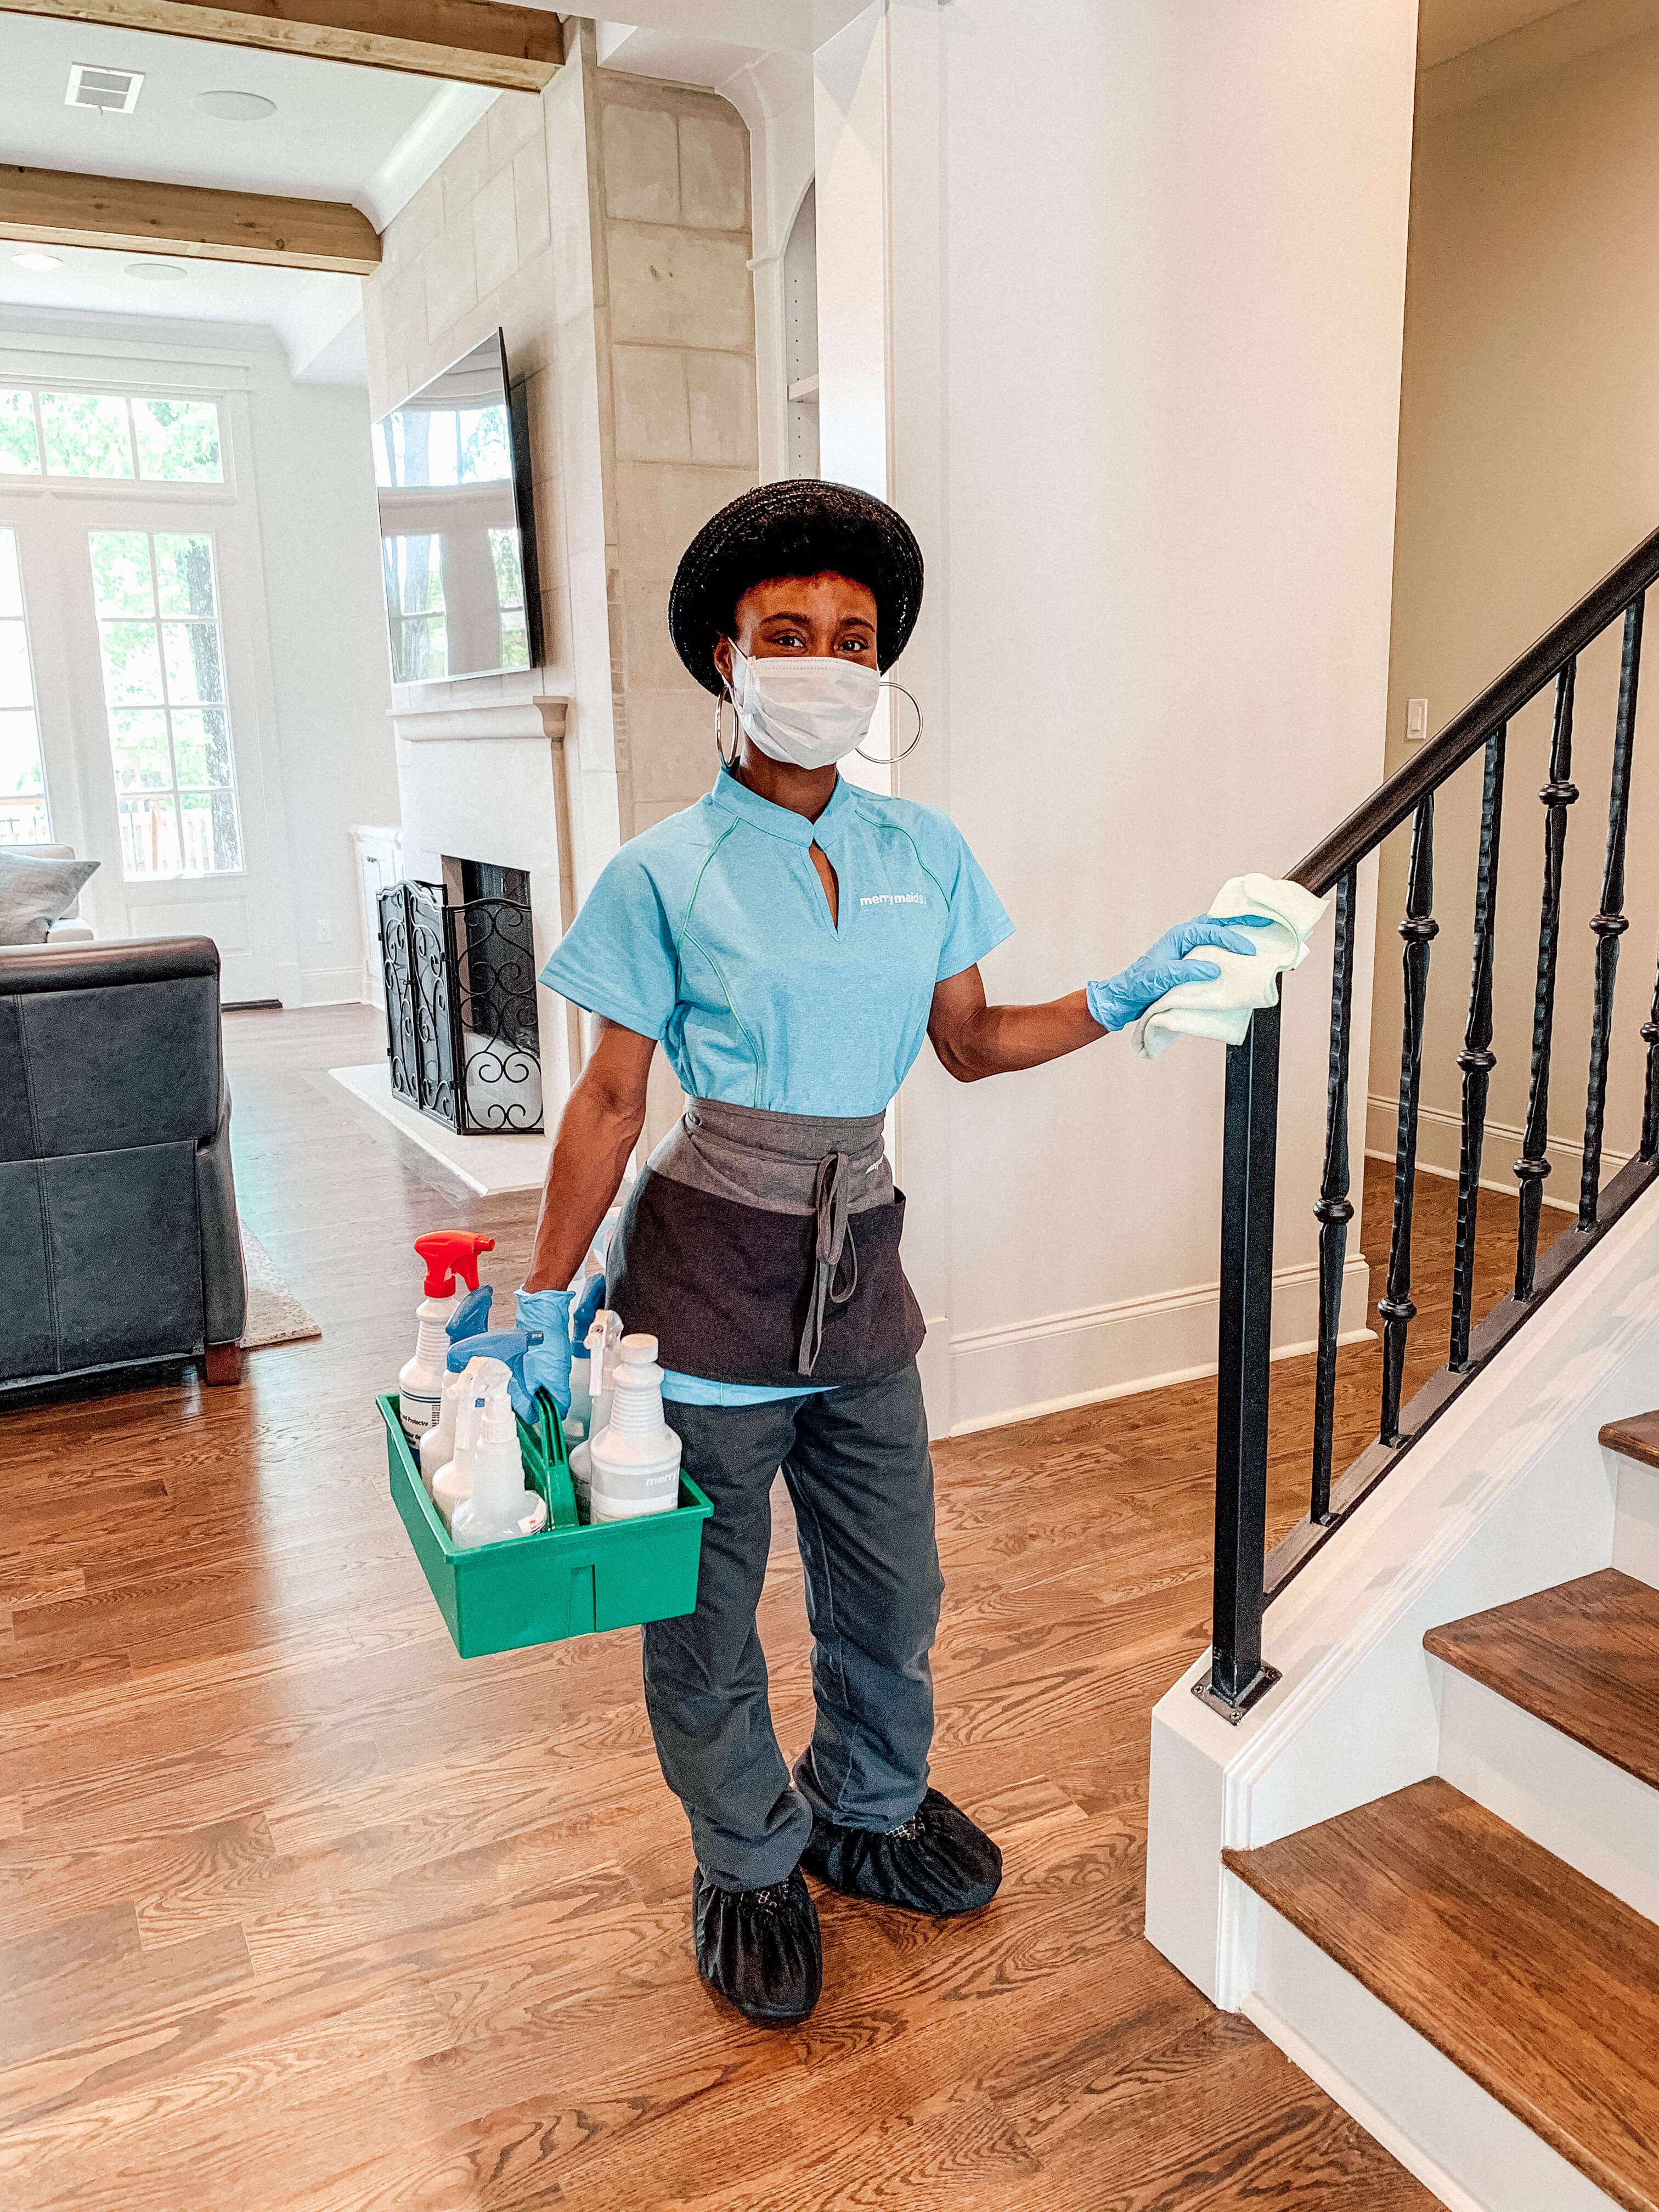 Merry Maids cleaning professional providing enhanced disinfection on a stairway railing